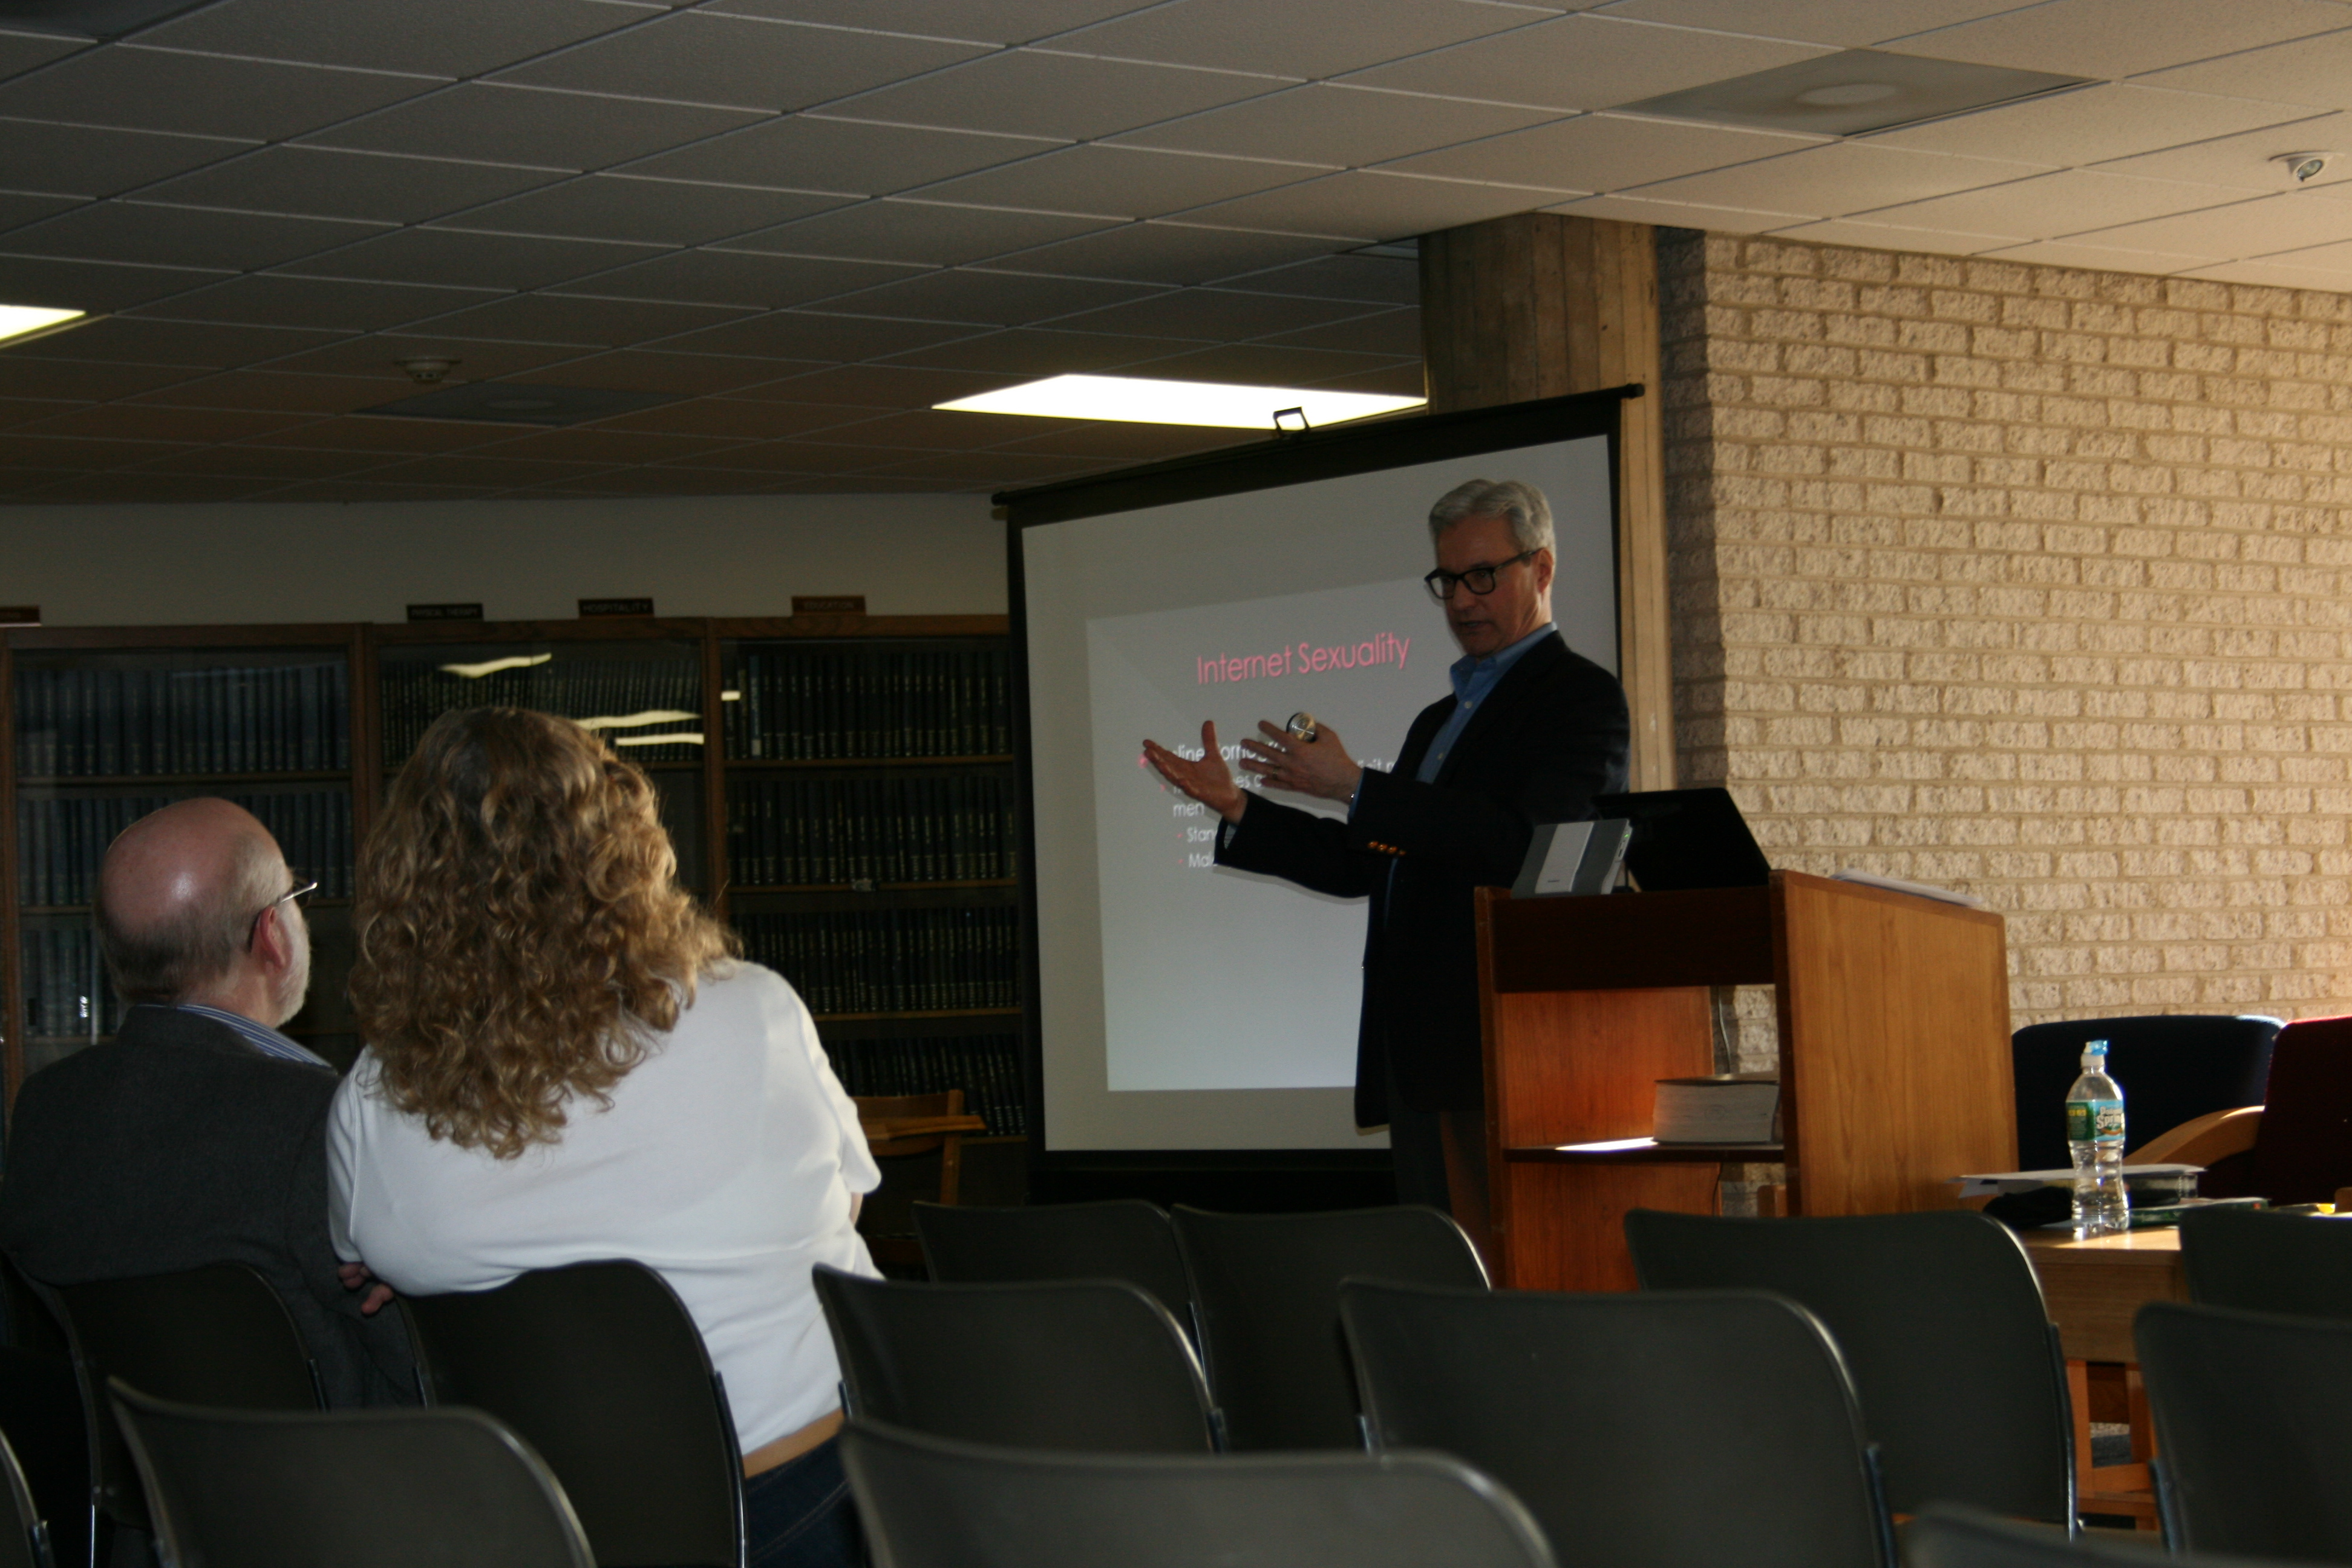 A photo of a white man standing next to a screen presenting information on sex in the media